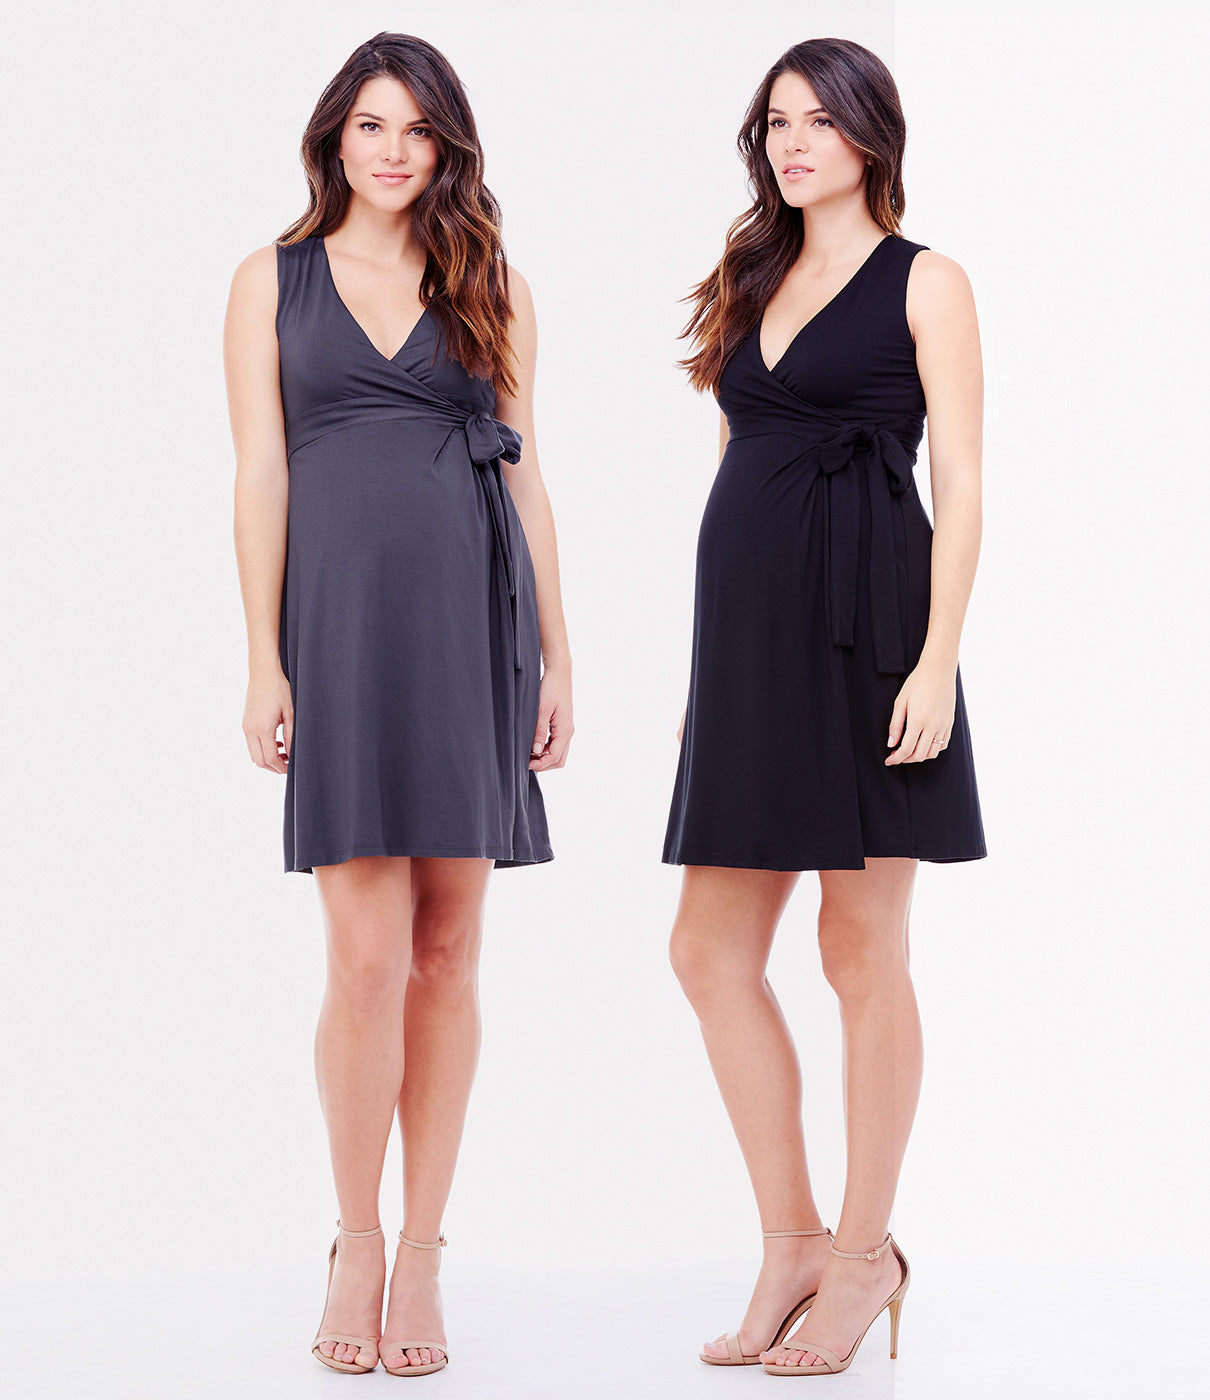 Where to WearPerfect for parties, weddings, or showers. A great postpartum special occasion dress, too!